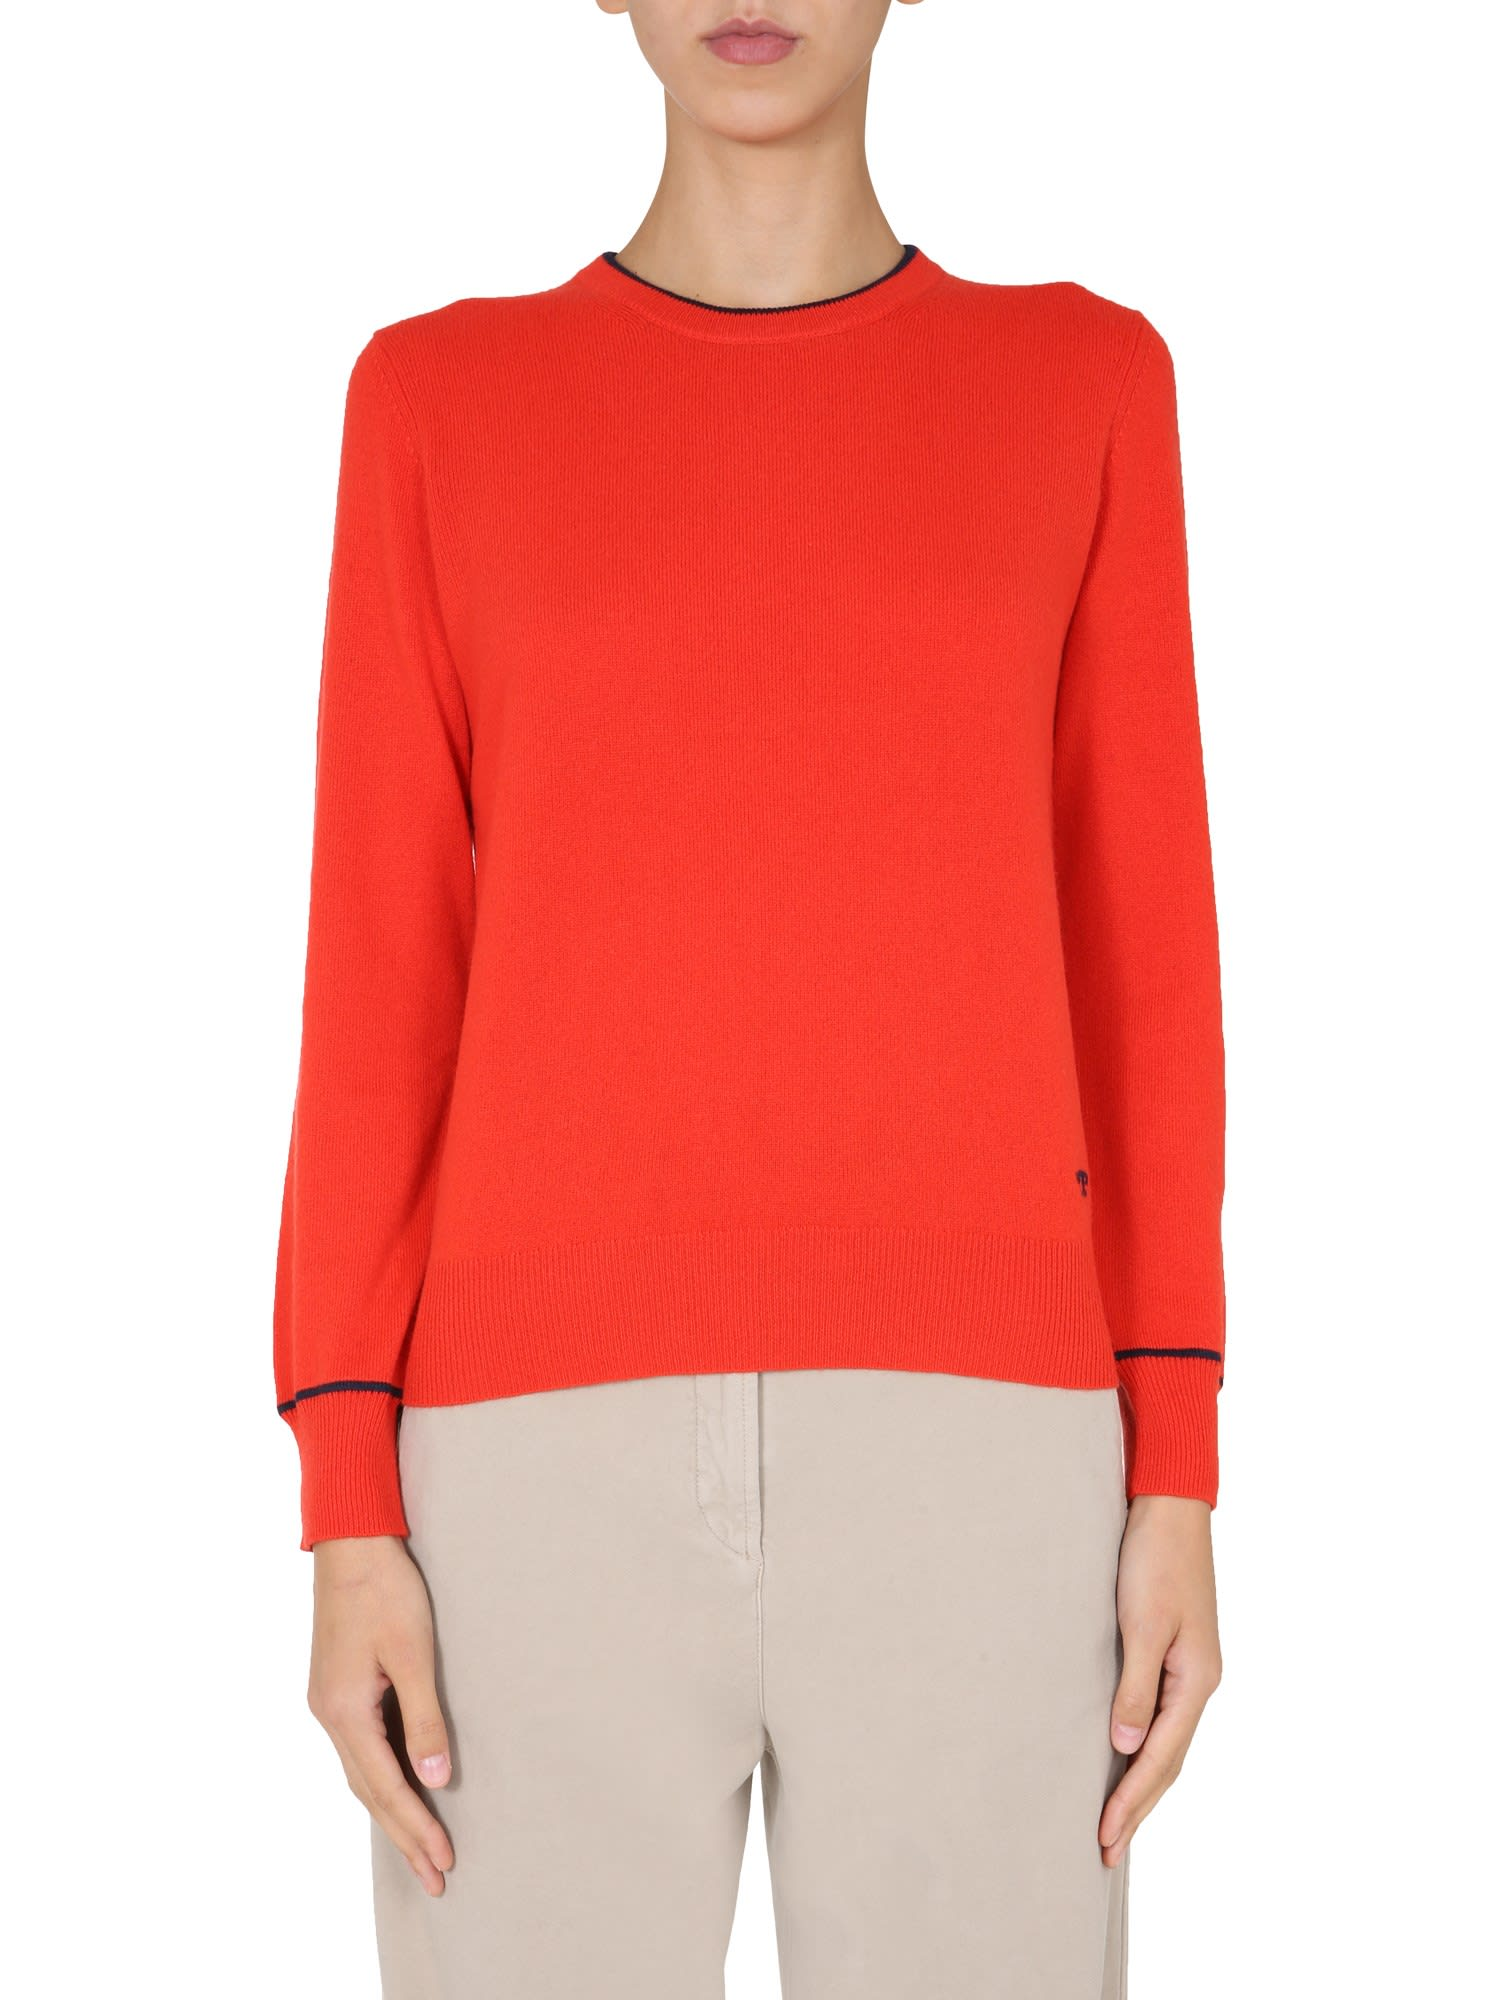 Tory Burch CREW NECK SWEATER